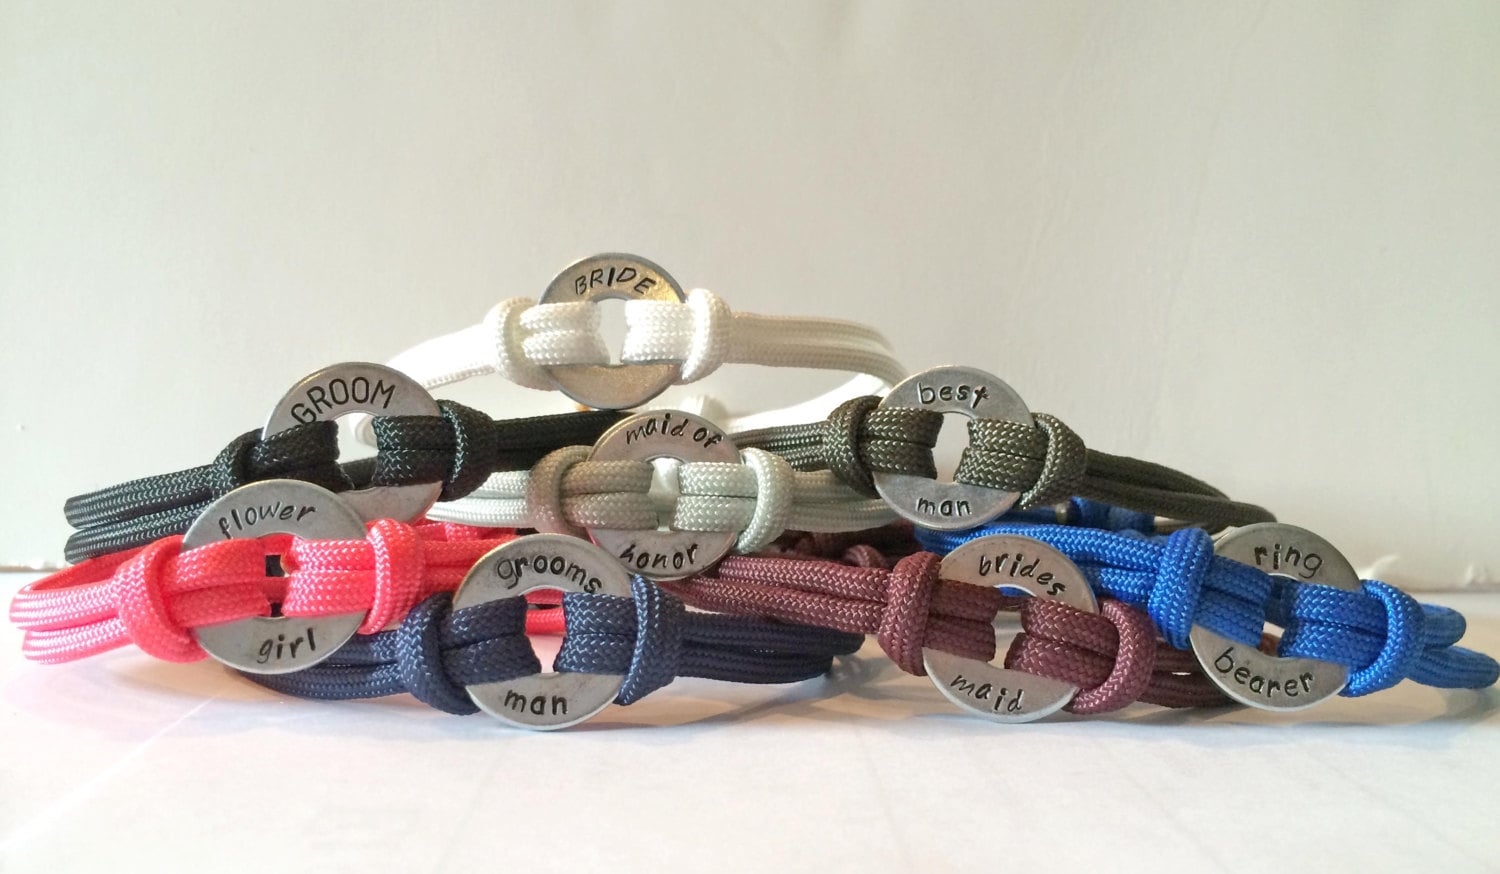 Bridal Party Personalized One Washer Double Strap Paracord Bracelet - Wedding, Bride, Groom, Bridesmaid, Grooms Man, Flower Girl